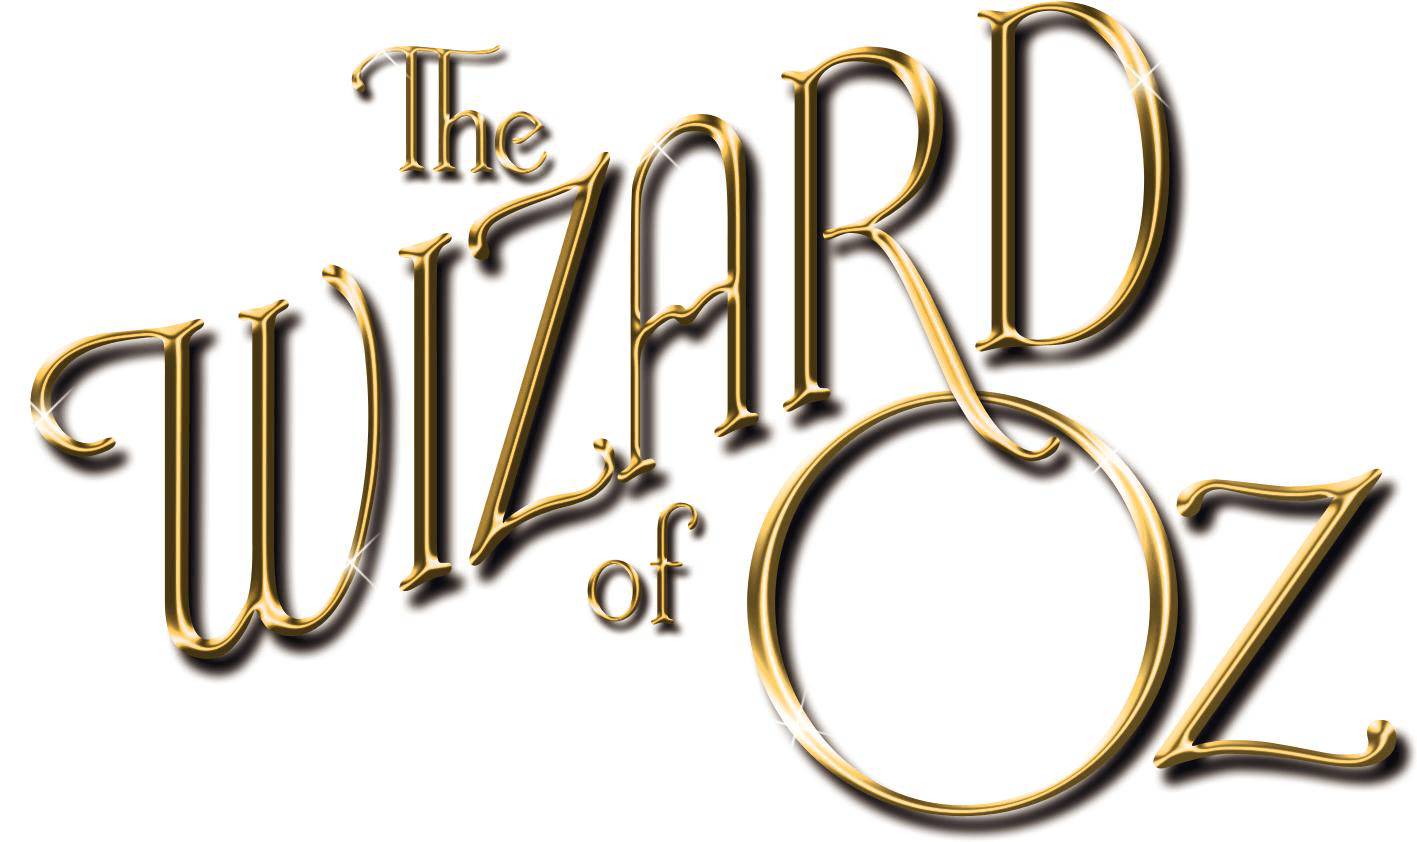 The Wizard of Oz 2005 DVD sets logo